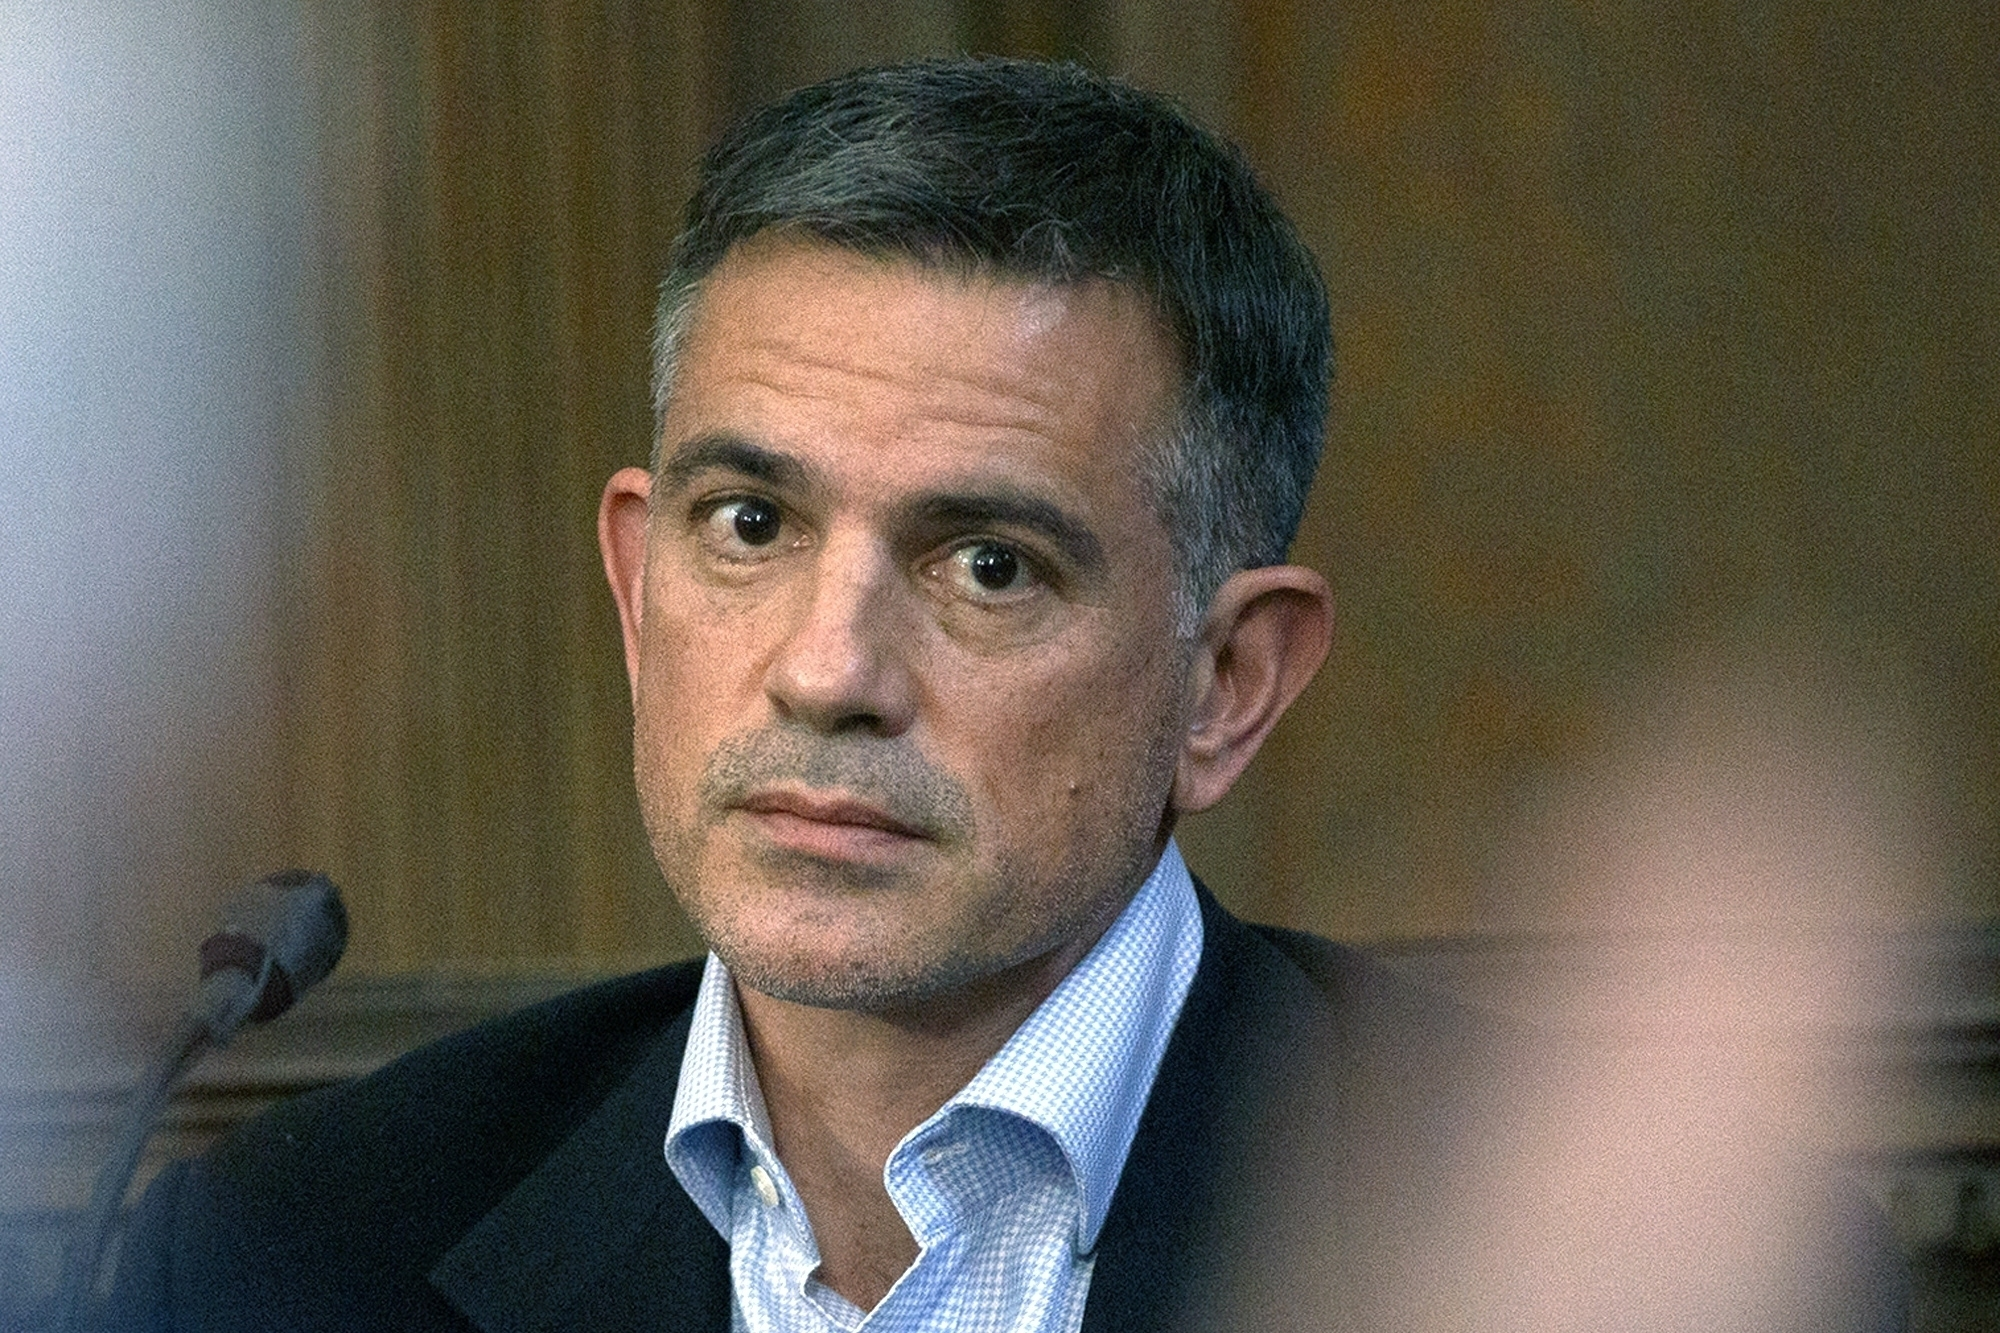 Fotis Dulos, charged with murdering his estranged and missing wife, is questioned during testimony in a civil case at Hartford Superior Court in Hartford, Conn on Dec. 4, 2019.